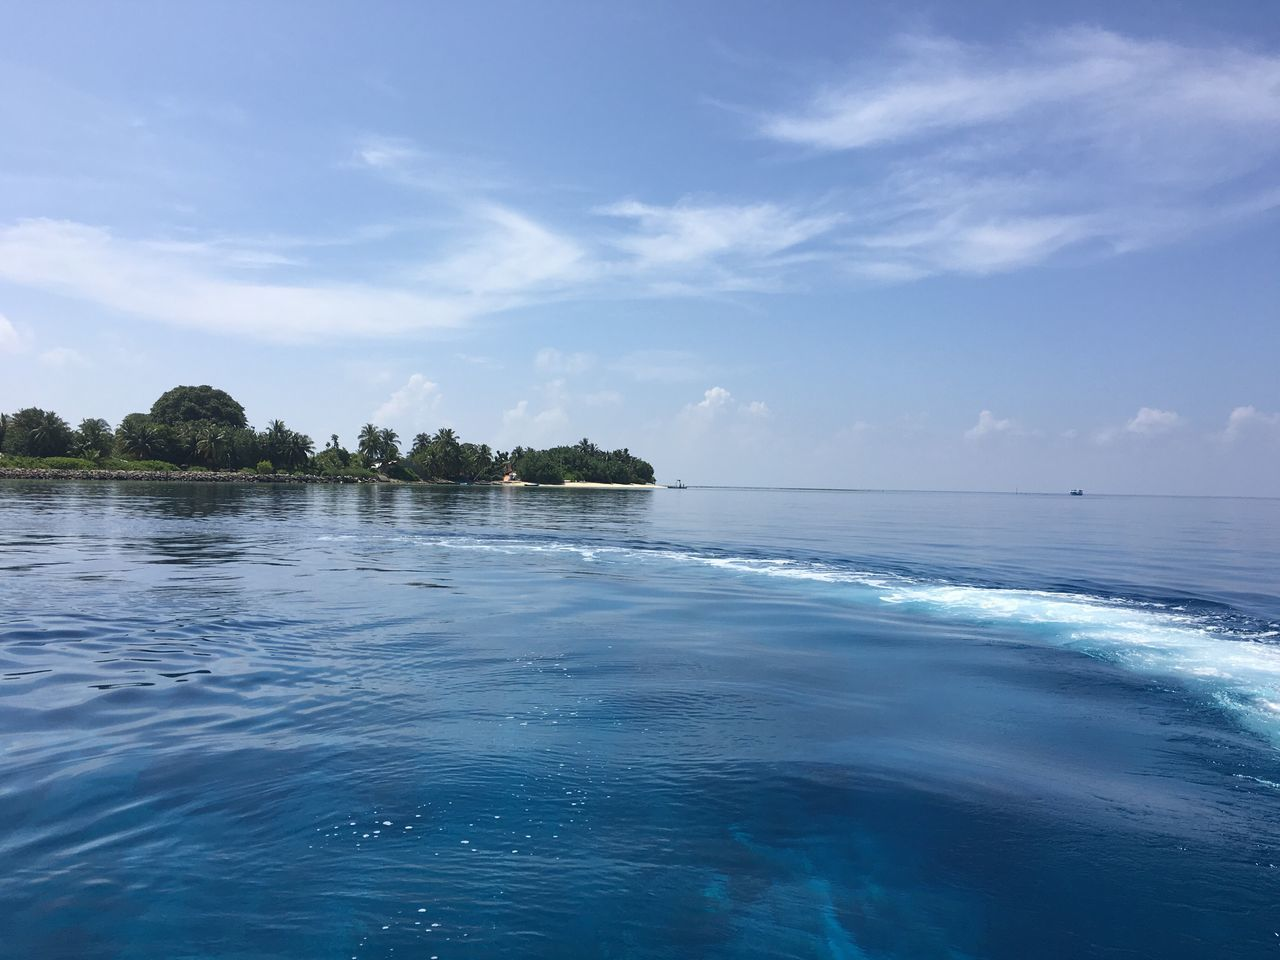 Tropical Tropical Paradise Islandlife Water Sky Nature Scenics Beauty In Nature Sea Tranquil Scene Waterfront Outdoors No People Day Tranquility Cloud - Sky Tree Rasdhoo Maldives Indian Ocean EyeEmNewHere